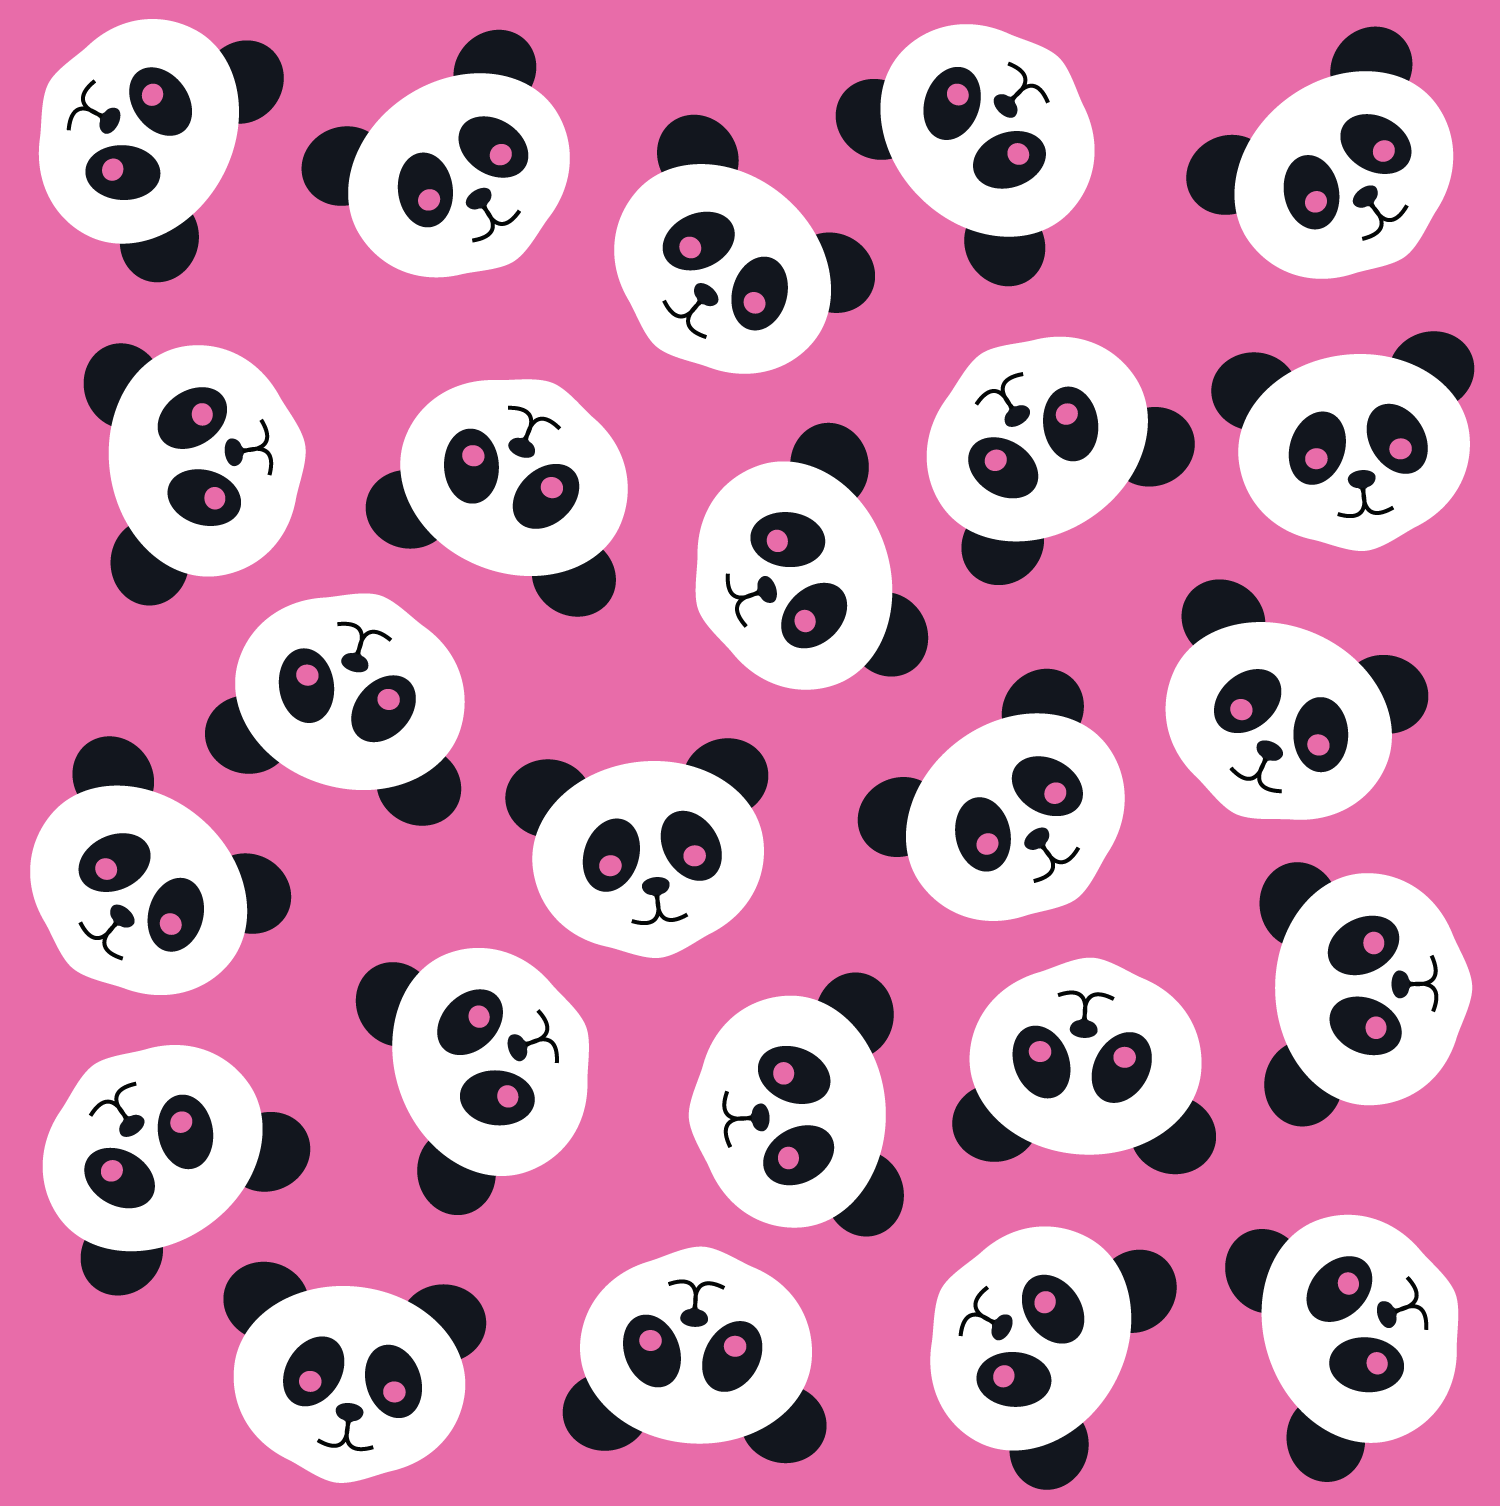 Pink Panda Wallpaper - WallpaperSafari